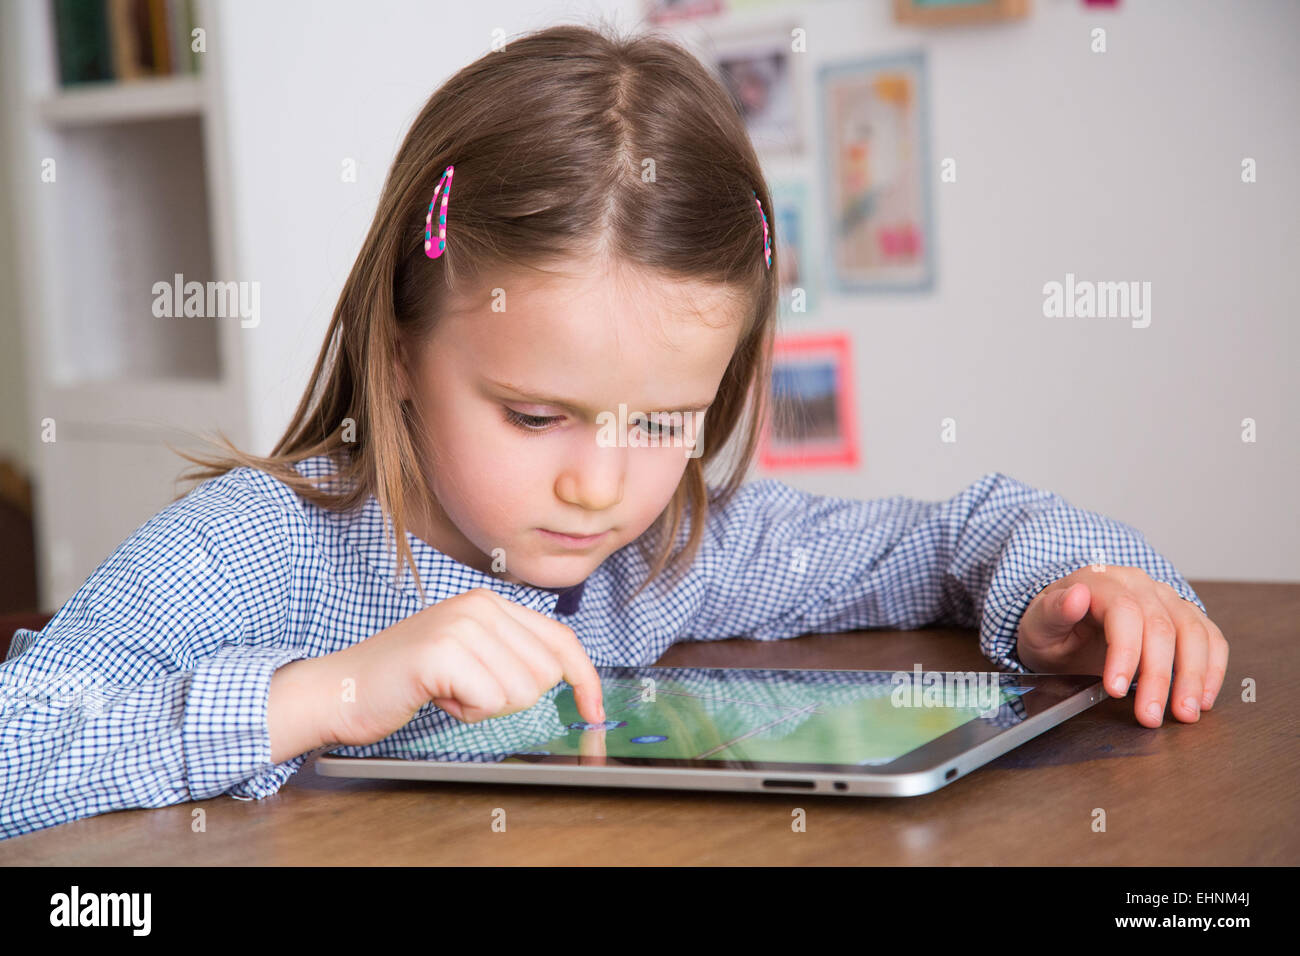 5 year-old girl using tablet computer. Banque D'Images